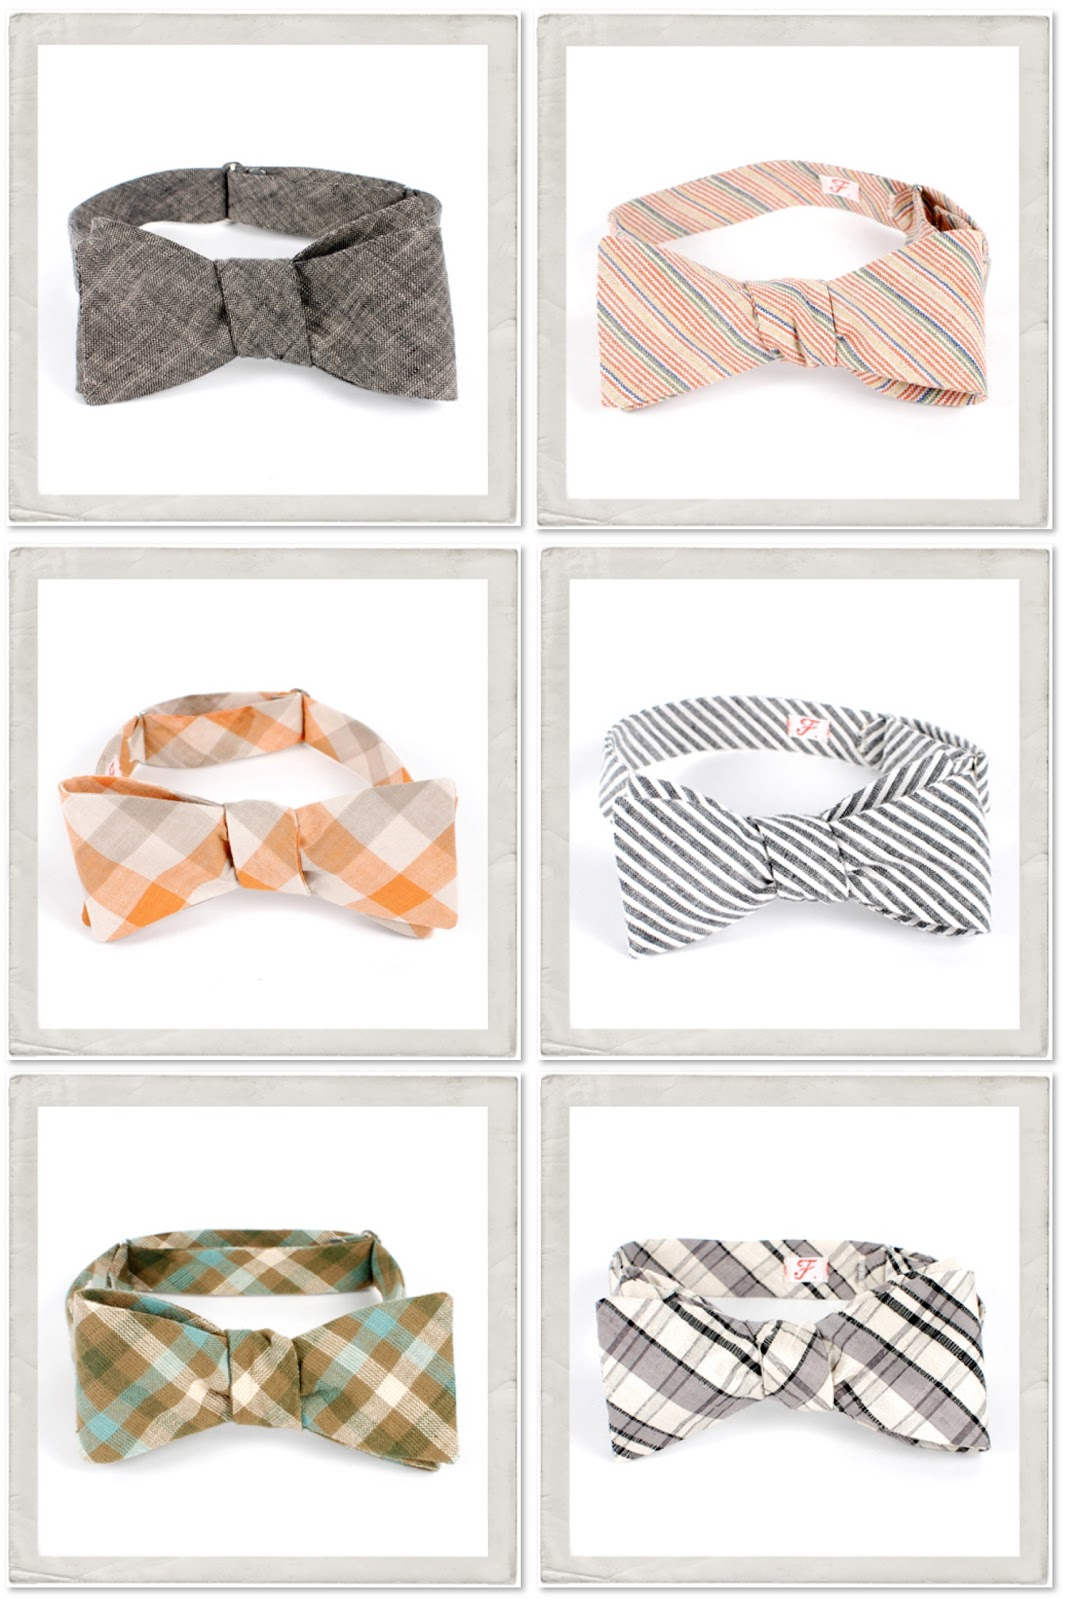 Not feeling the necktie! Check out some of Forage Bow ties!